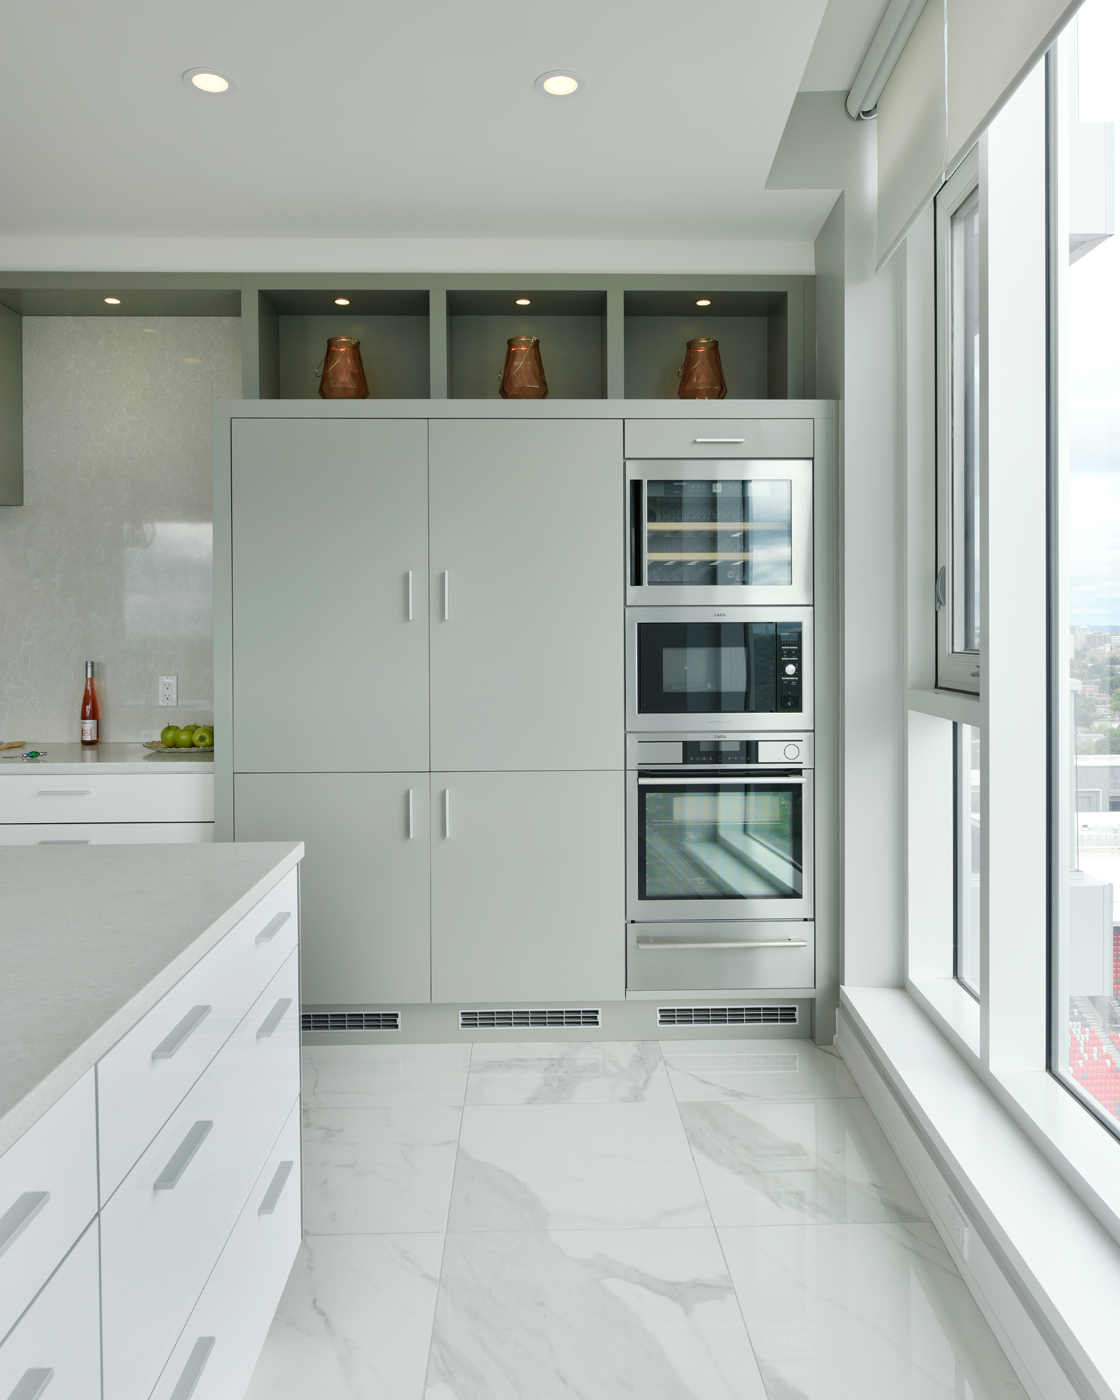 Kitchen Built-in Refrigerator